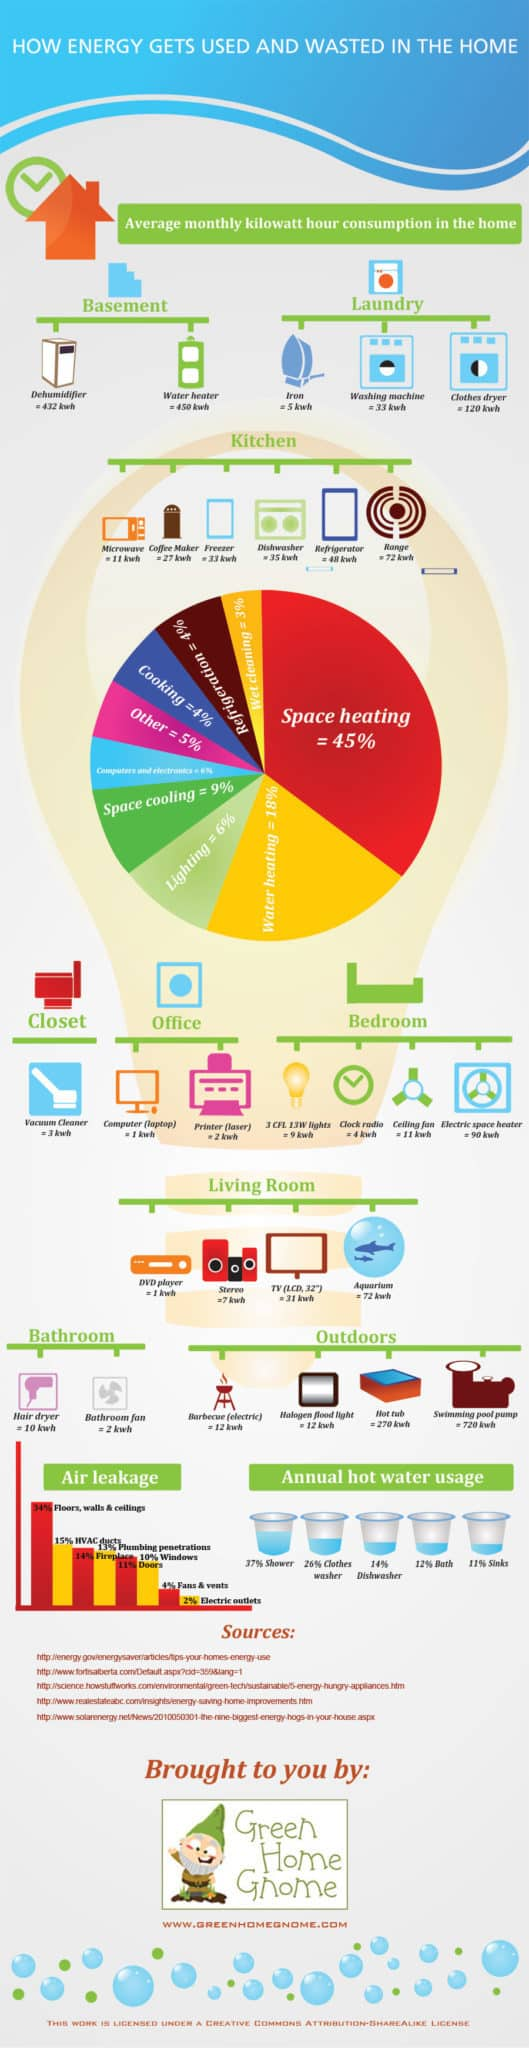 Energy use in the home - infographic